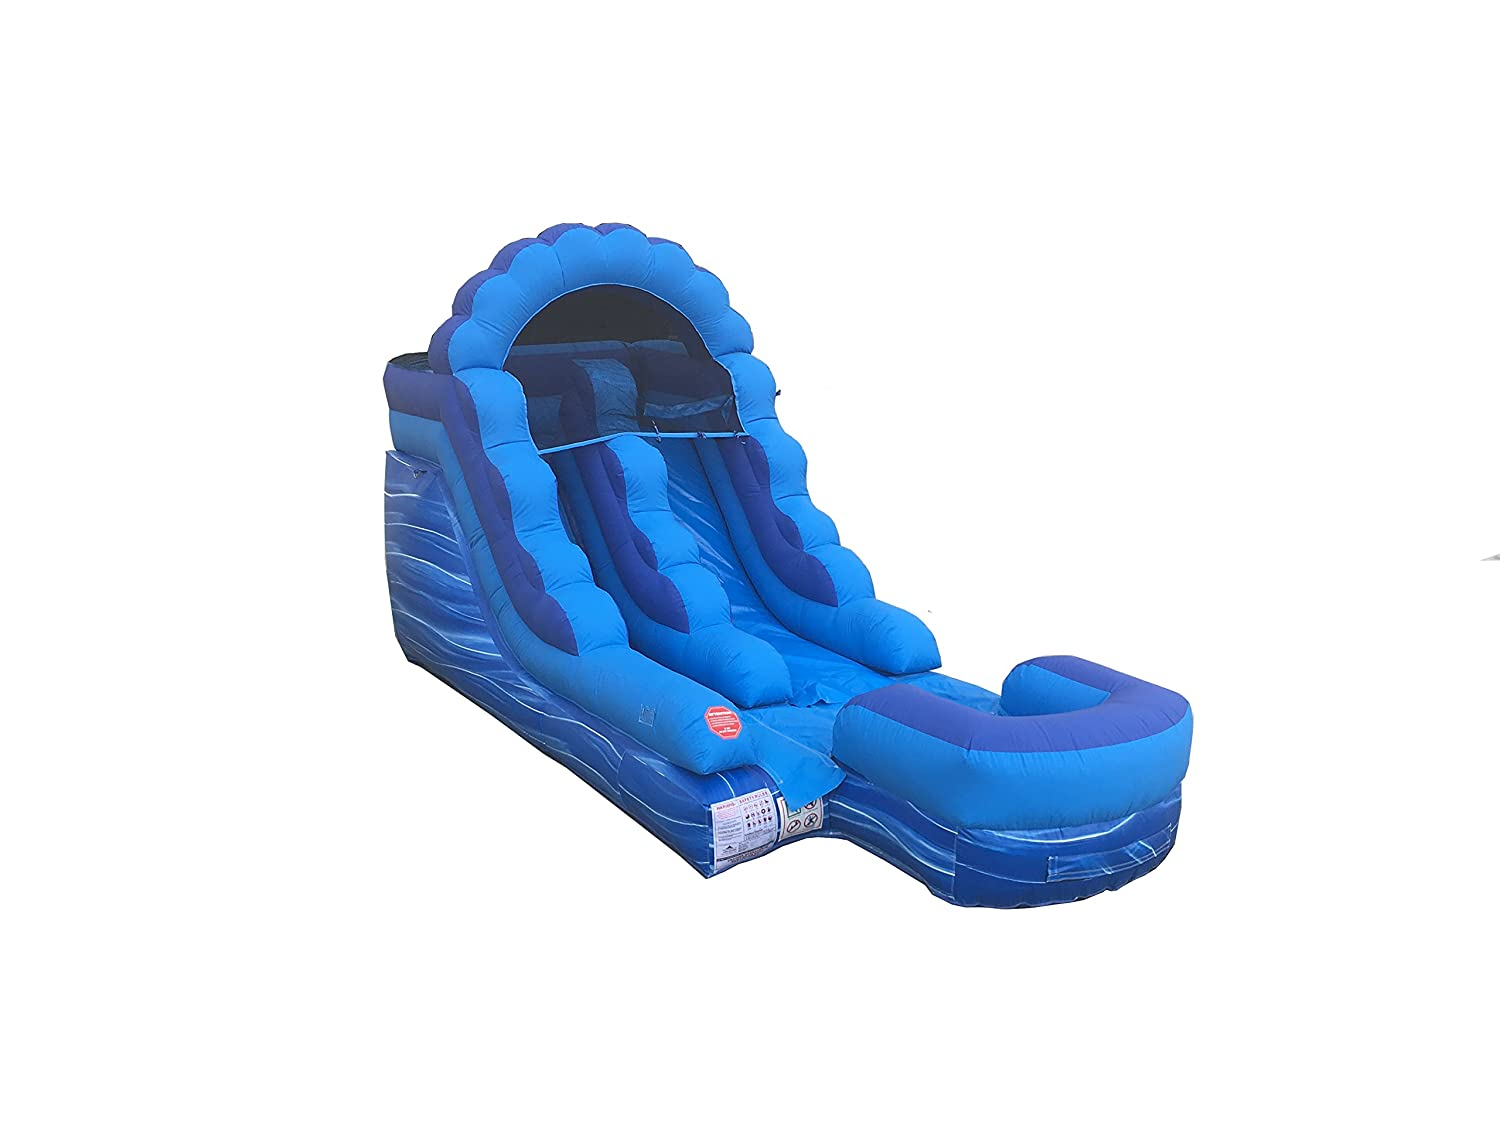 Amazon com tentandtable 12 foot blue marble inflatable water slide wet dry commercial grade 1 0 hp blower stakes included toys games